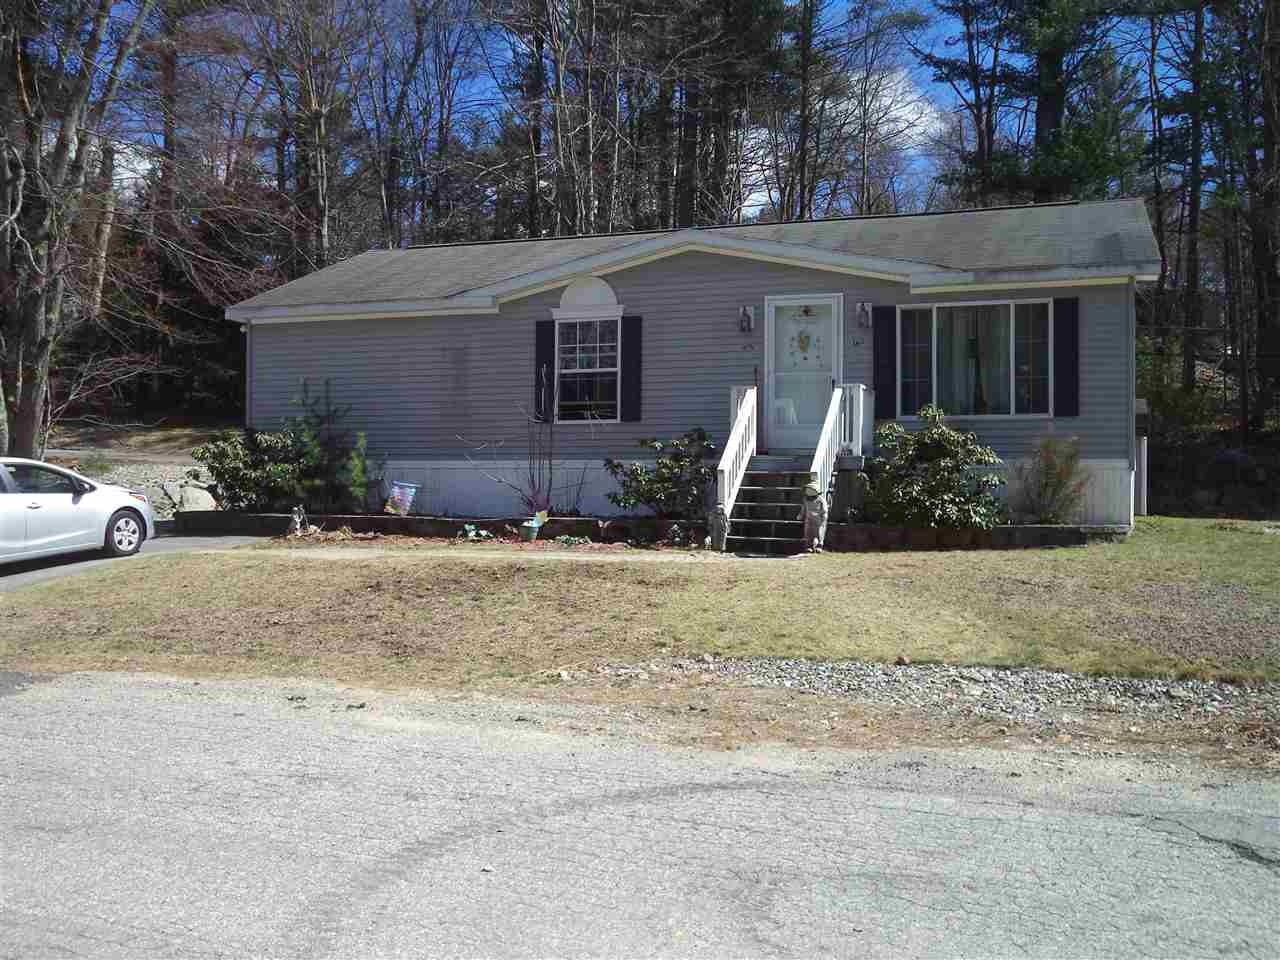 MLS 4746068: 211 By Pass 28 #16.5 Spring Drive, Derry NH